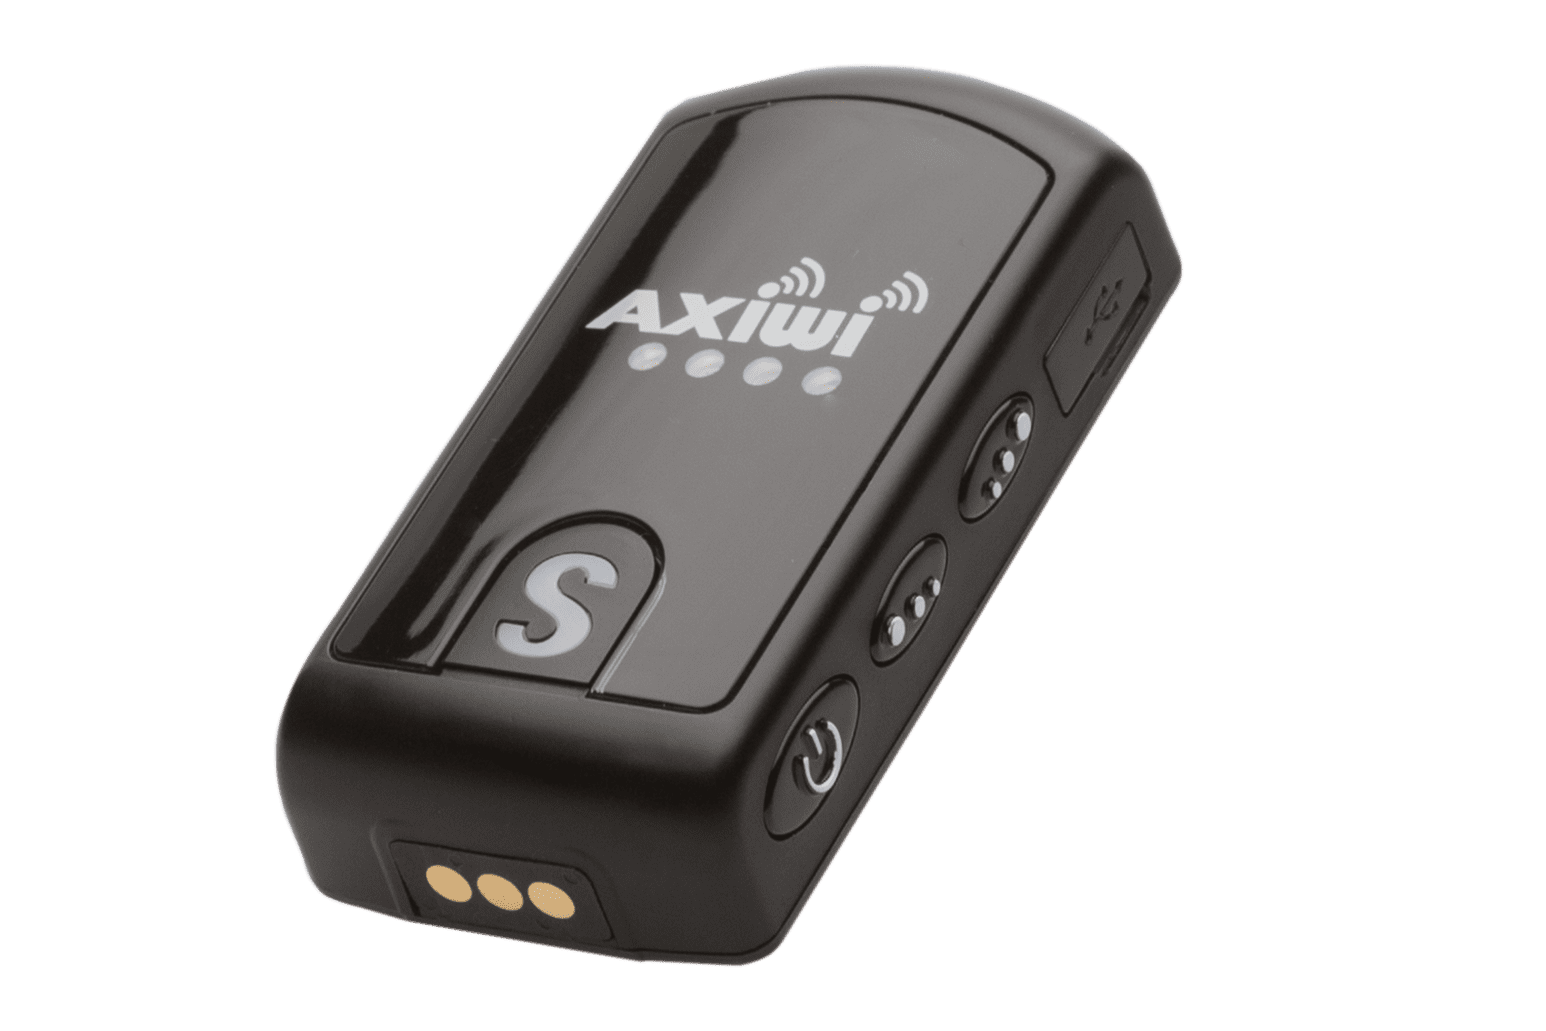 axiwi-at-320-communicationsystemsystem-referee-sport